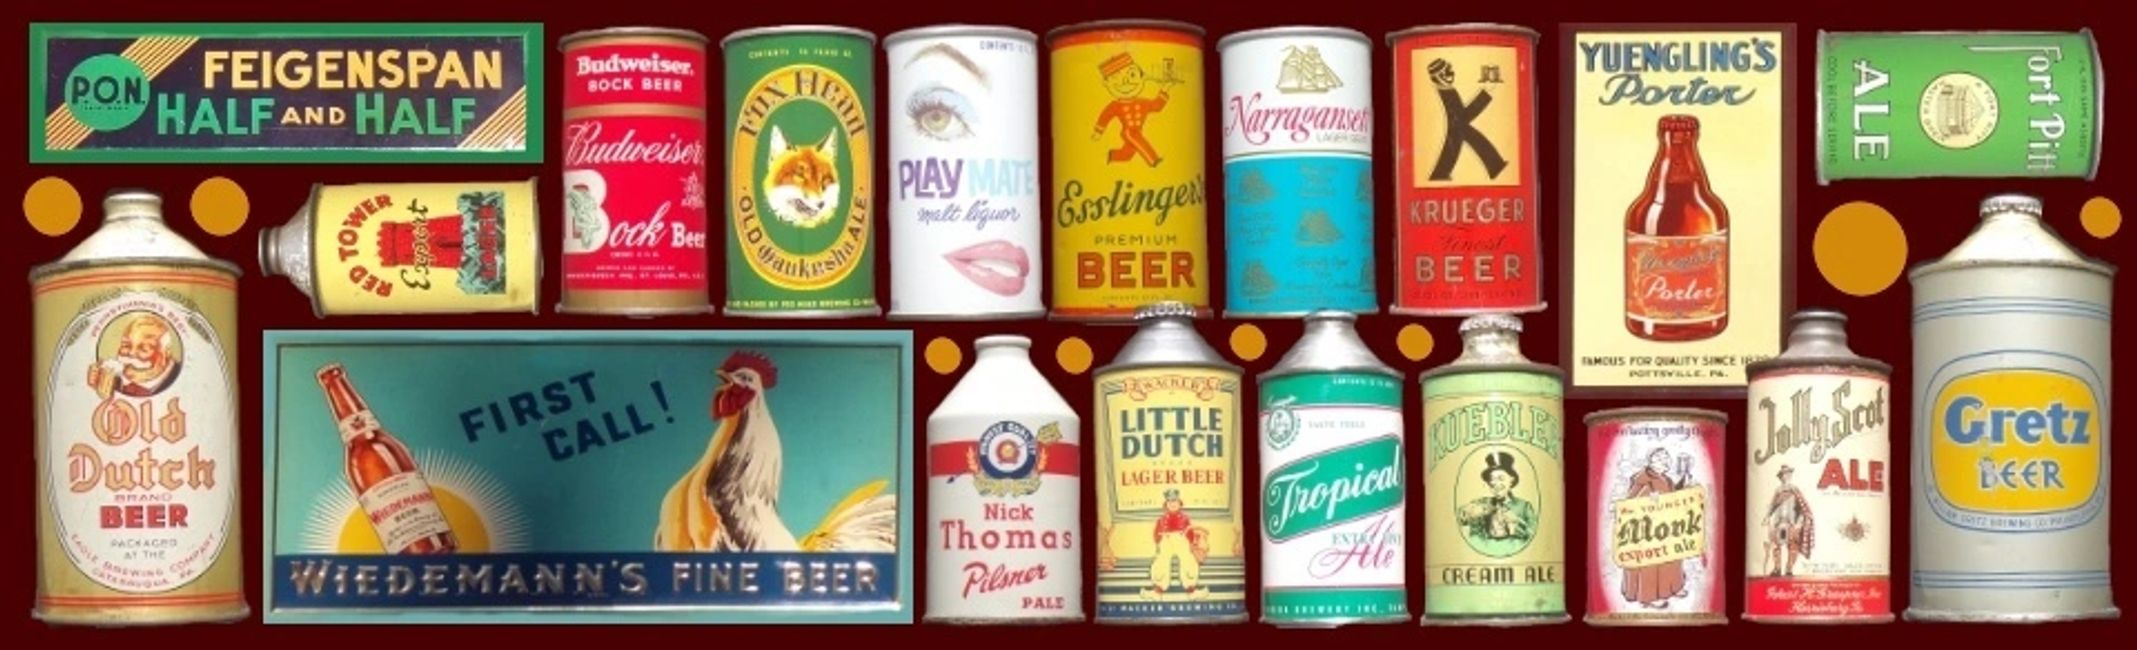 Vintage beer cans and tin over cardboard signs at CanSmart Auctions. cansmartbeercans.com